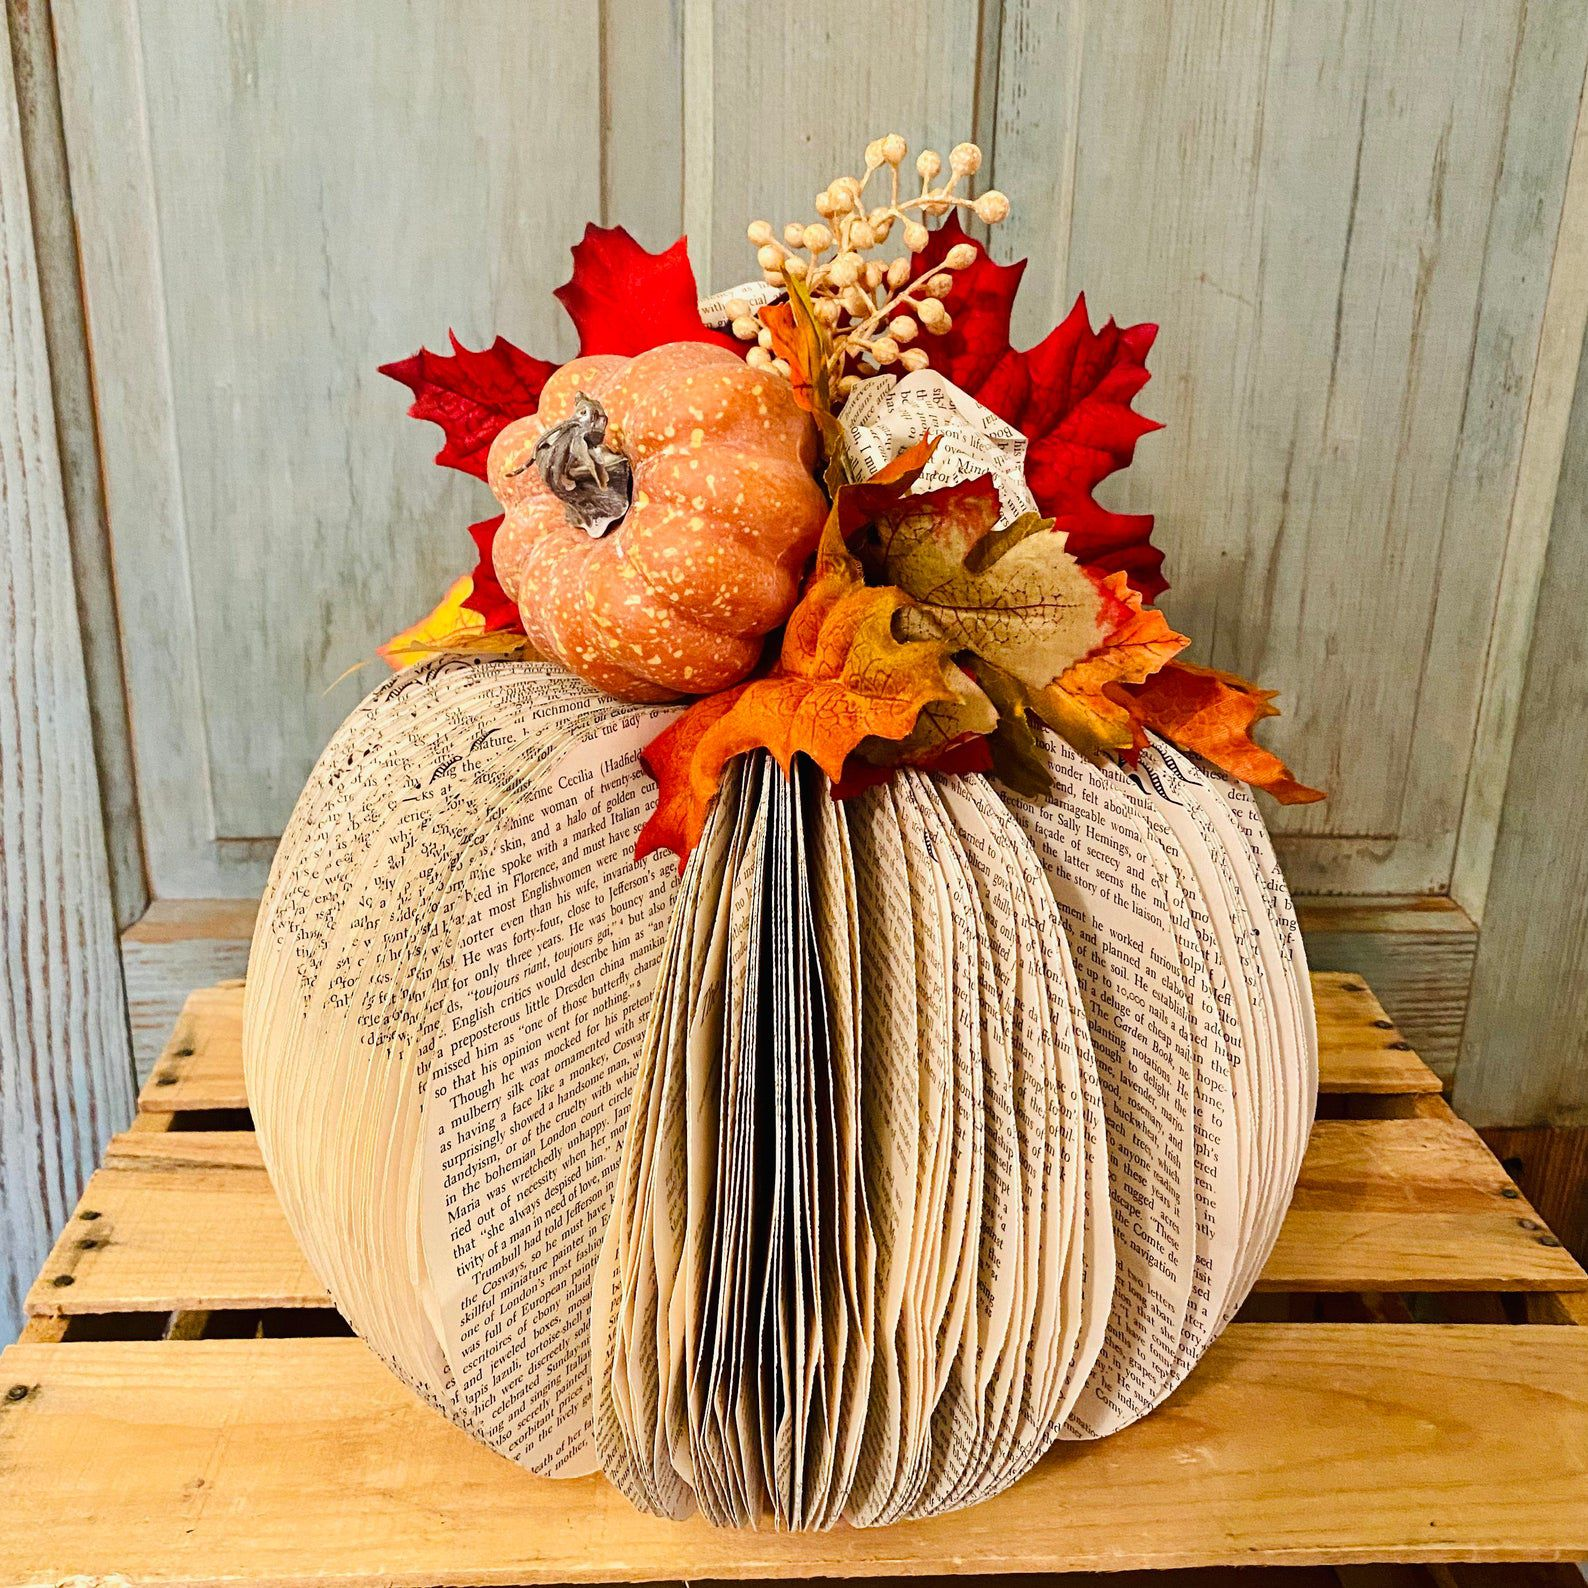 Image of a pumpkin made of book pages.